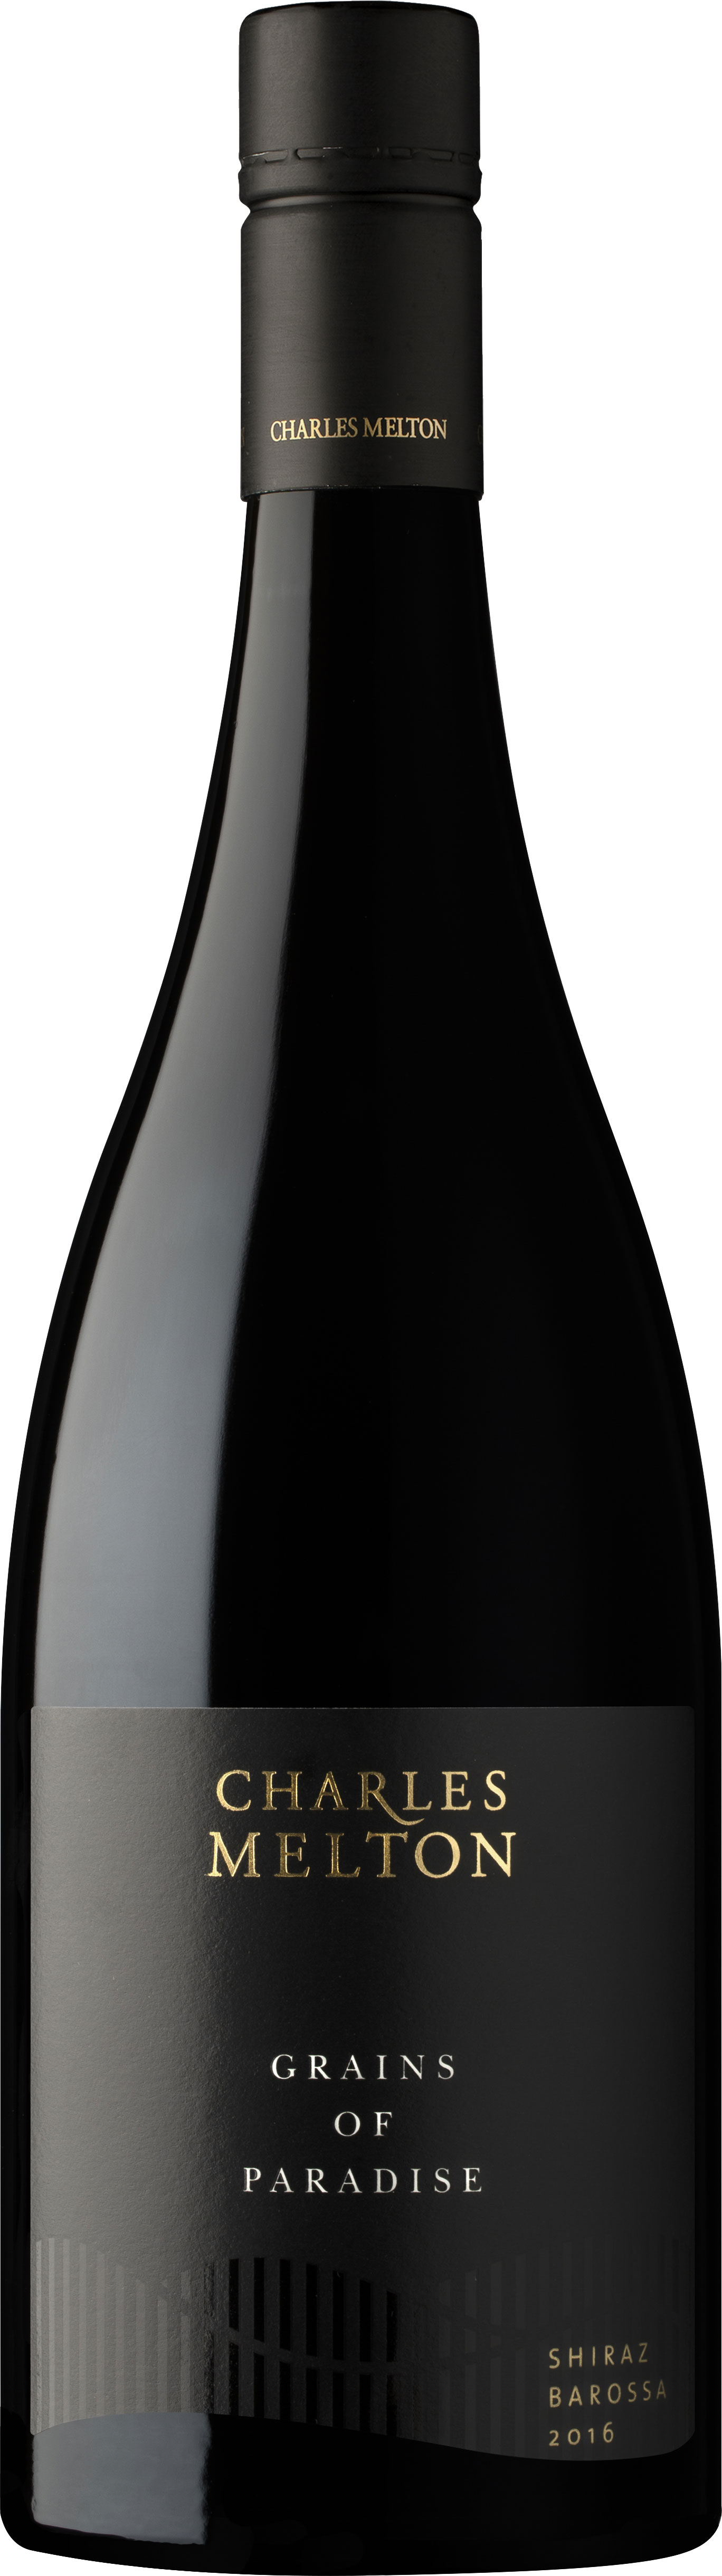 Charles Melton - Grains of Paradise Barossa Valley Shiraz 2016 75cl Bottle